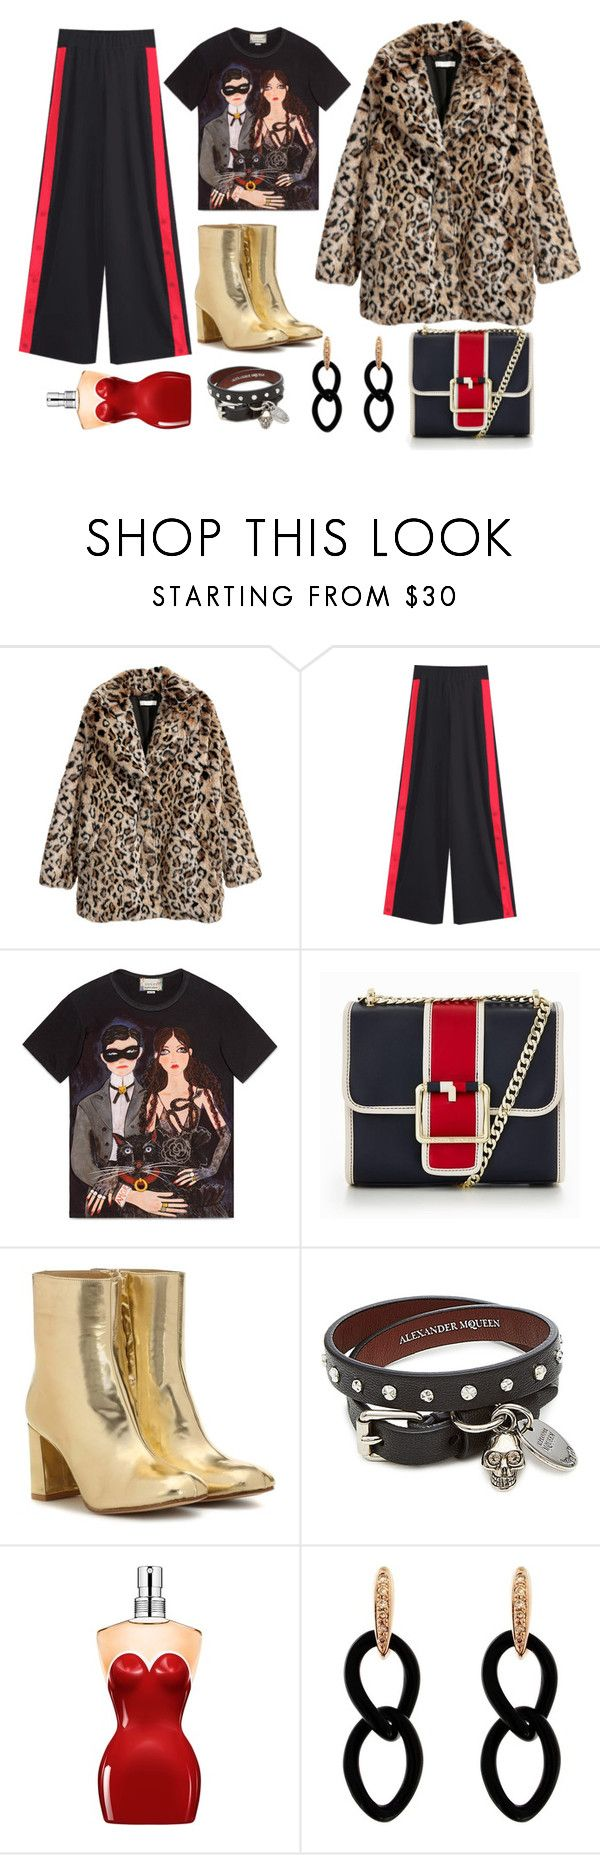 """Evening disco outfit"" by annet-a on Polyvore featuring мода, Gucci, Tommy Hilfiger, Maryam Nassir Zadeh, Alexander McQueen, Jean-Paul Gaultier и Jona"